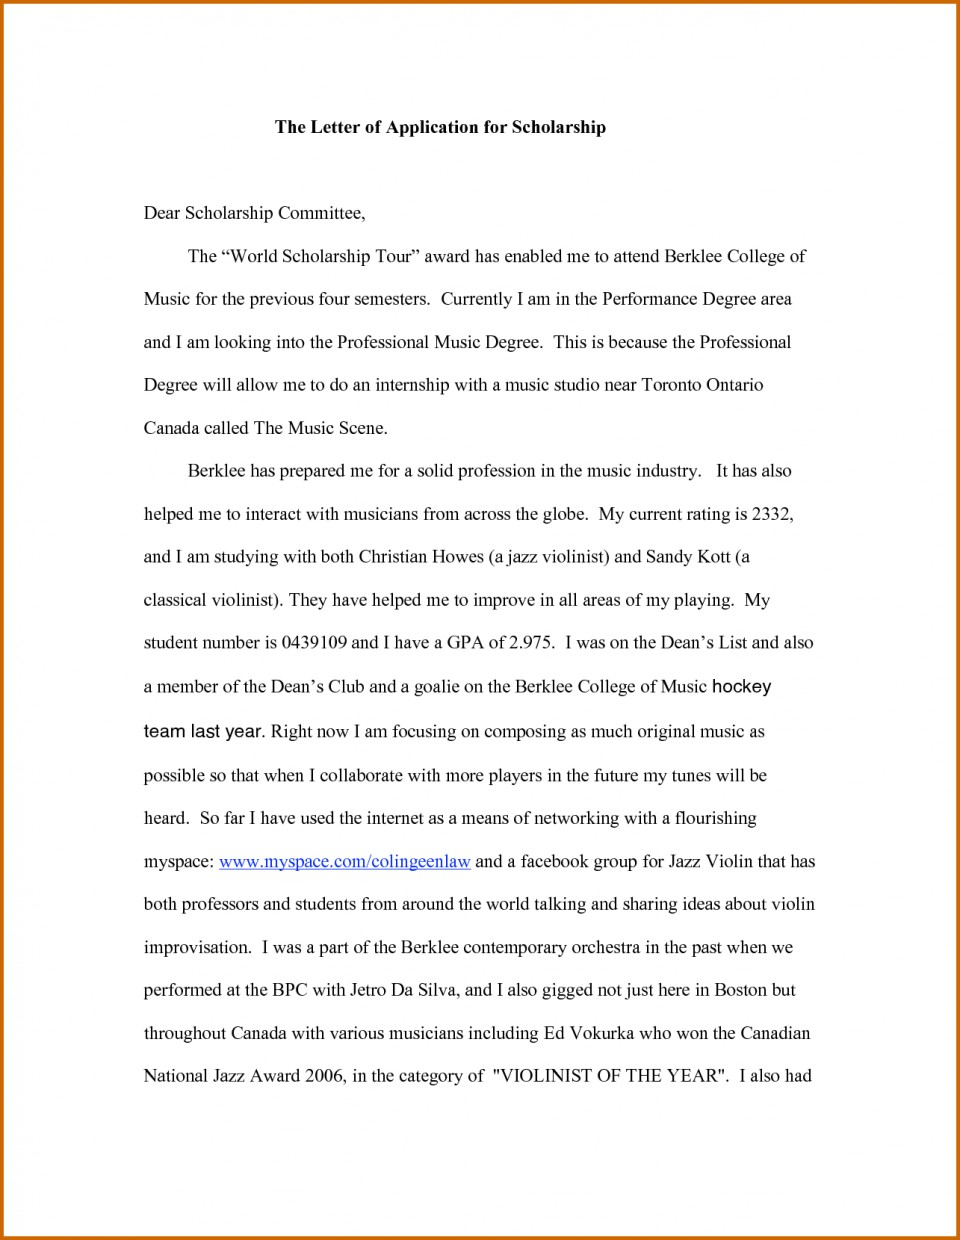 008 What To Write In Scholarship Essay Writer My How Personal Statement For Scholarships Application Good Shocking High School Students Study Abroad Examples 2018 Bachelors And Masters 960